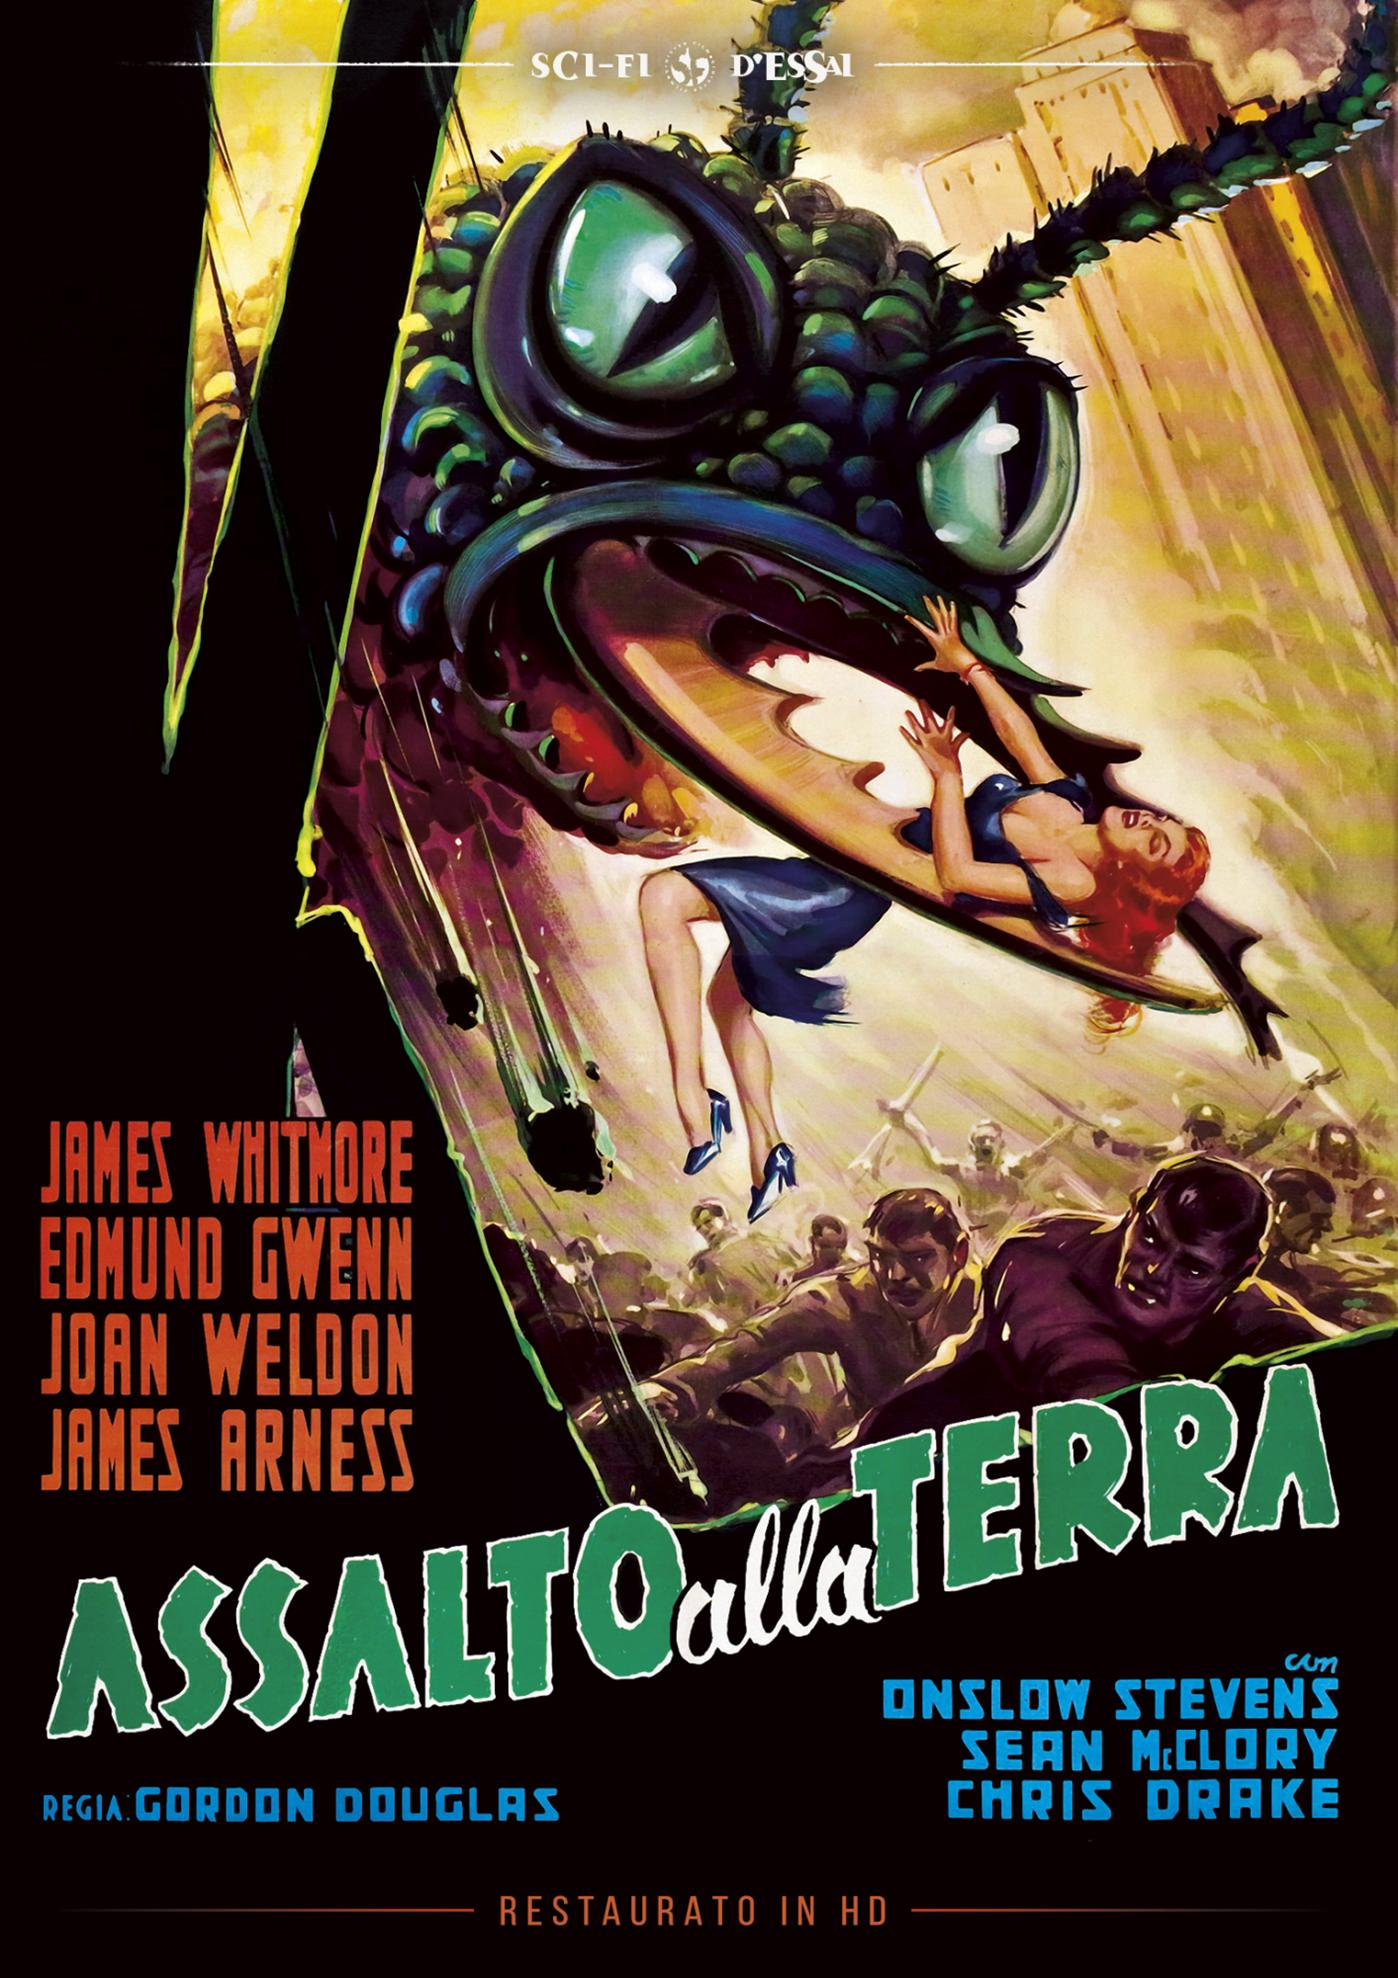 ASSALTO ALLA TERRA (RESTAURATO IN HD) (DVD)